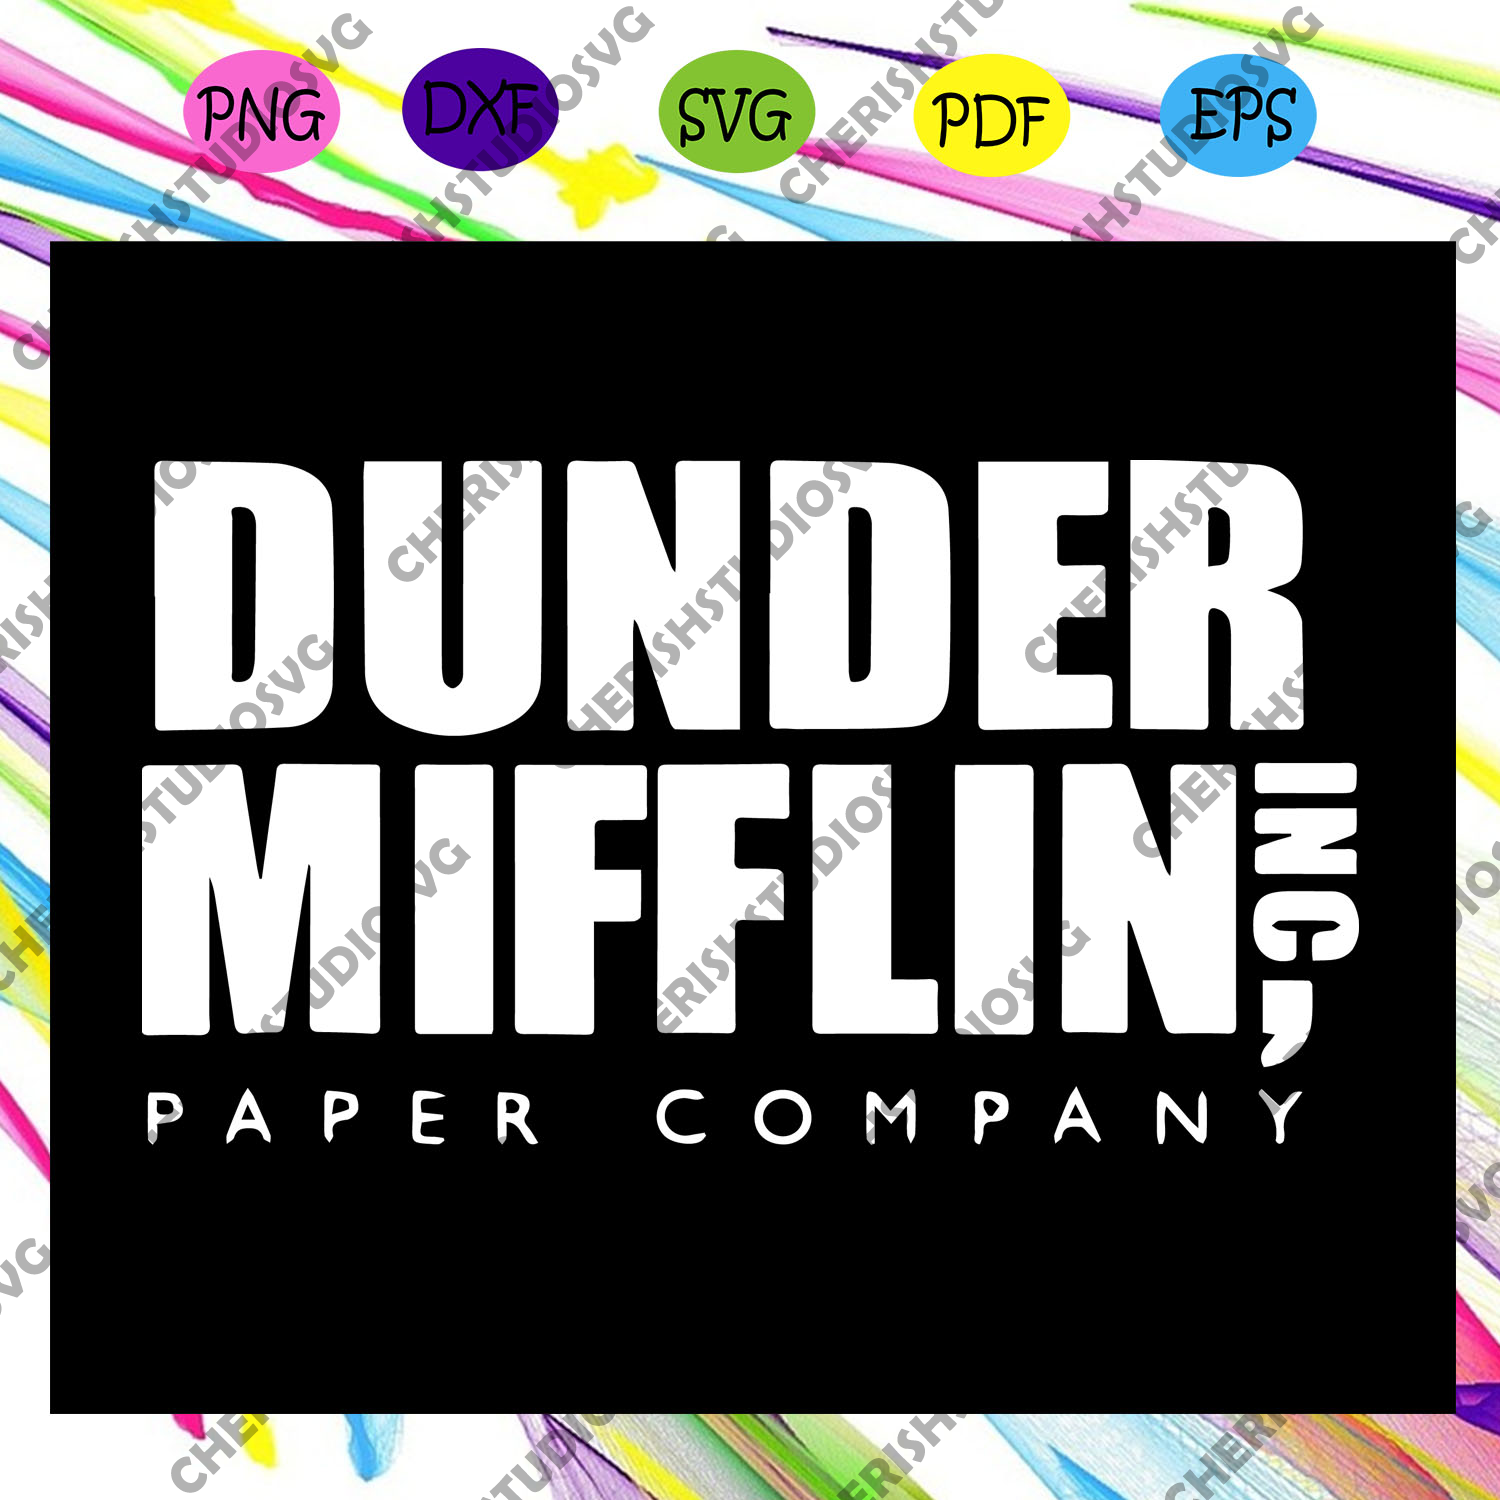 Dunder Mifflin Paper Company Svg, The Office Svg, Dunder Miffin Svg, Michael Scott For Silhouette, Files For Cricut, SVG, DXF, EPS, PNG Instant Download